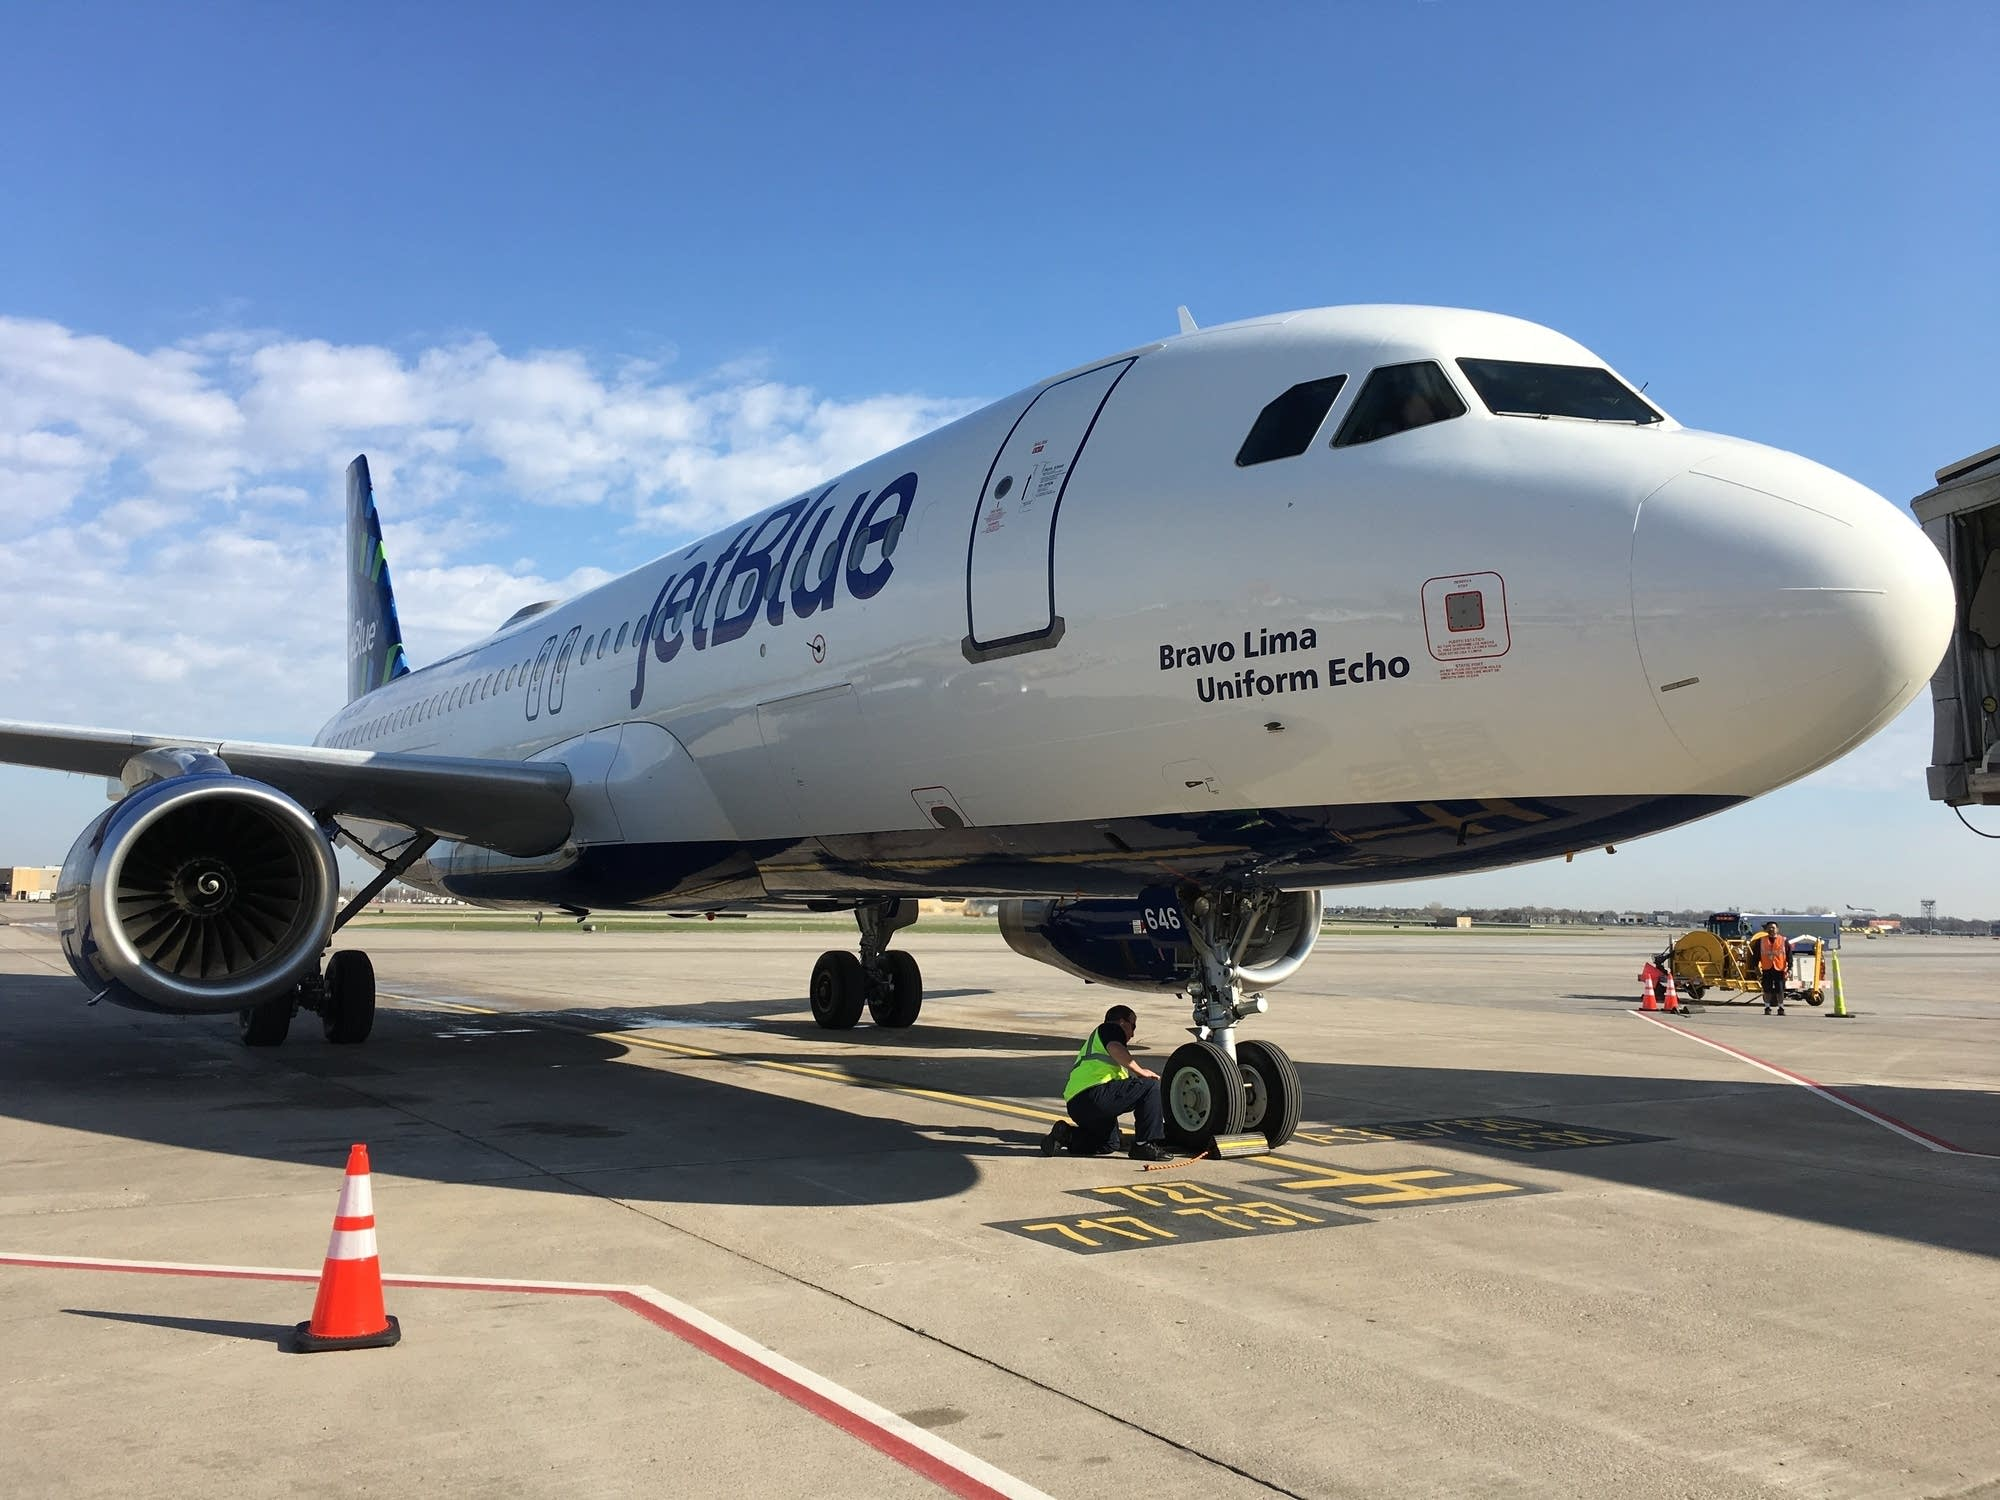 JetBlue Comes to Minneapolis-Saint Paul International Airport